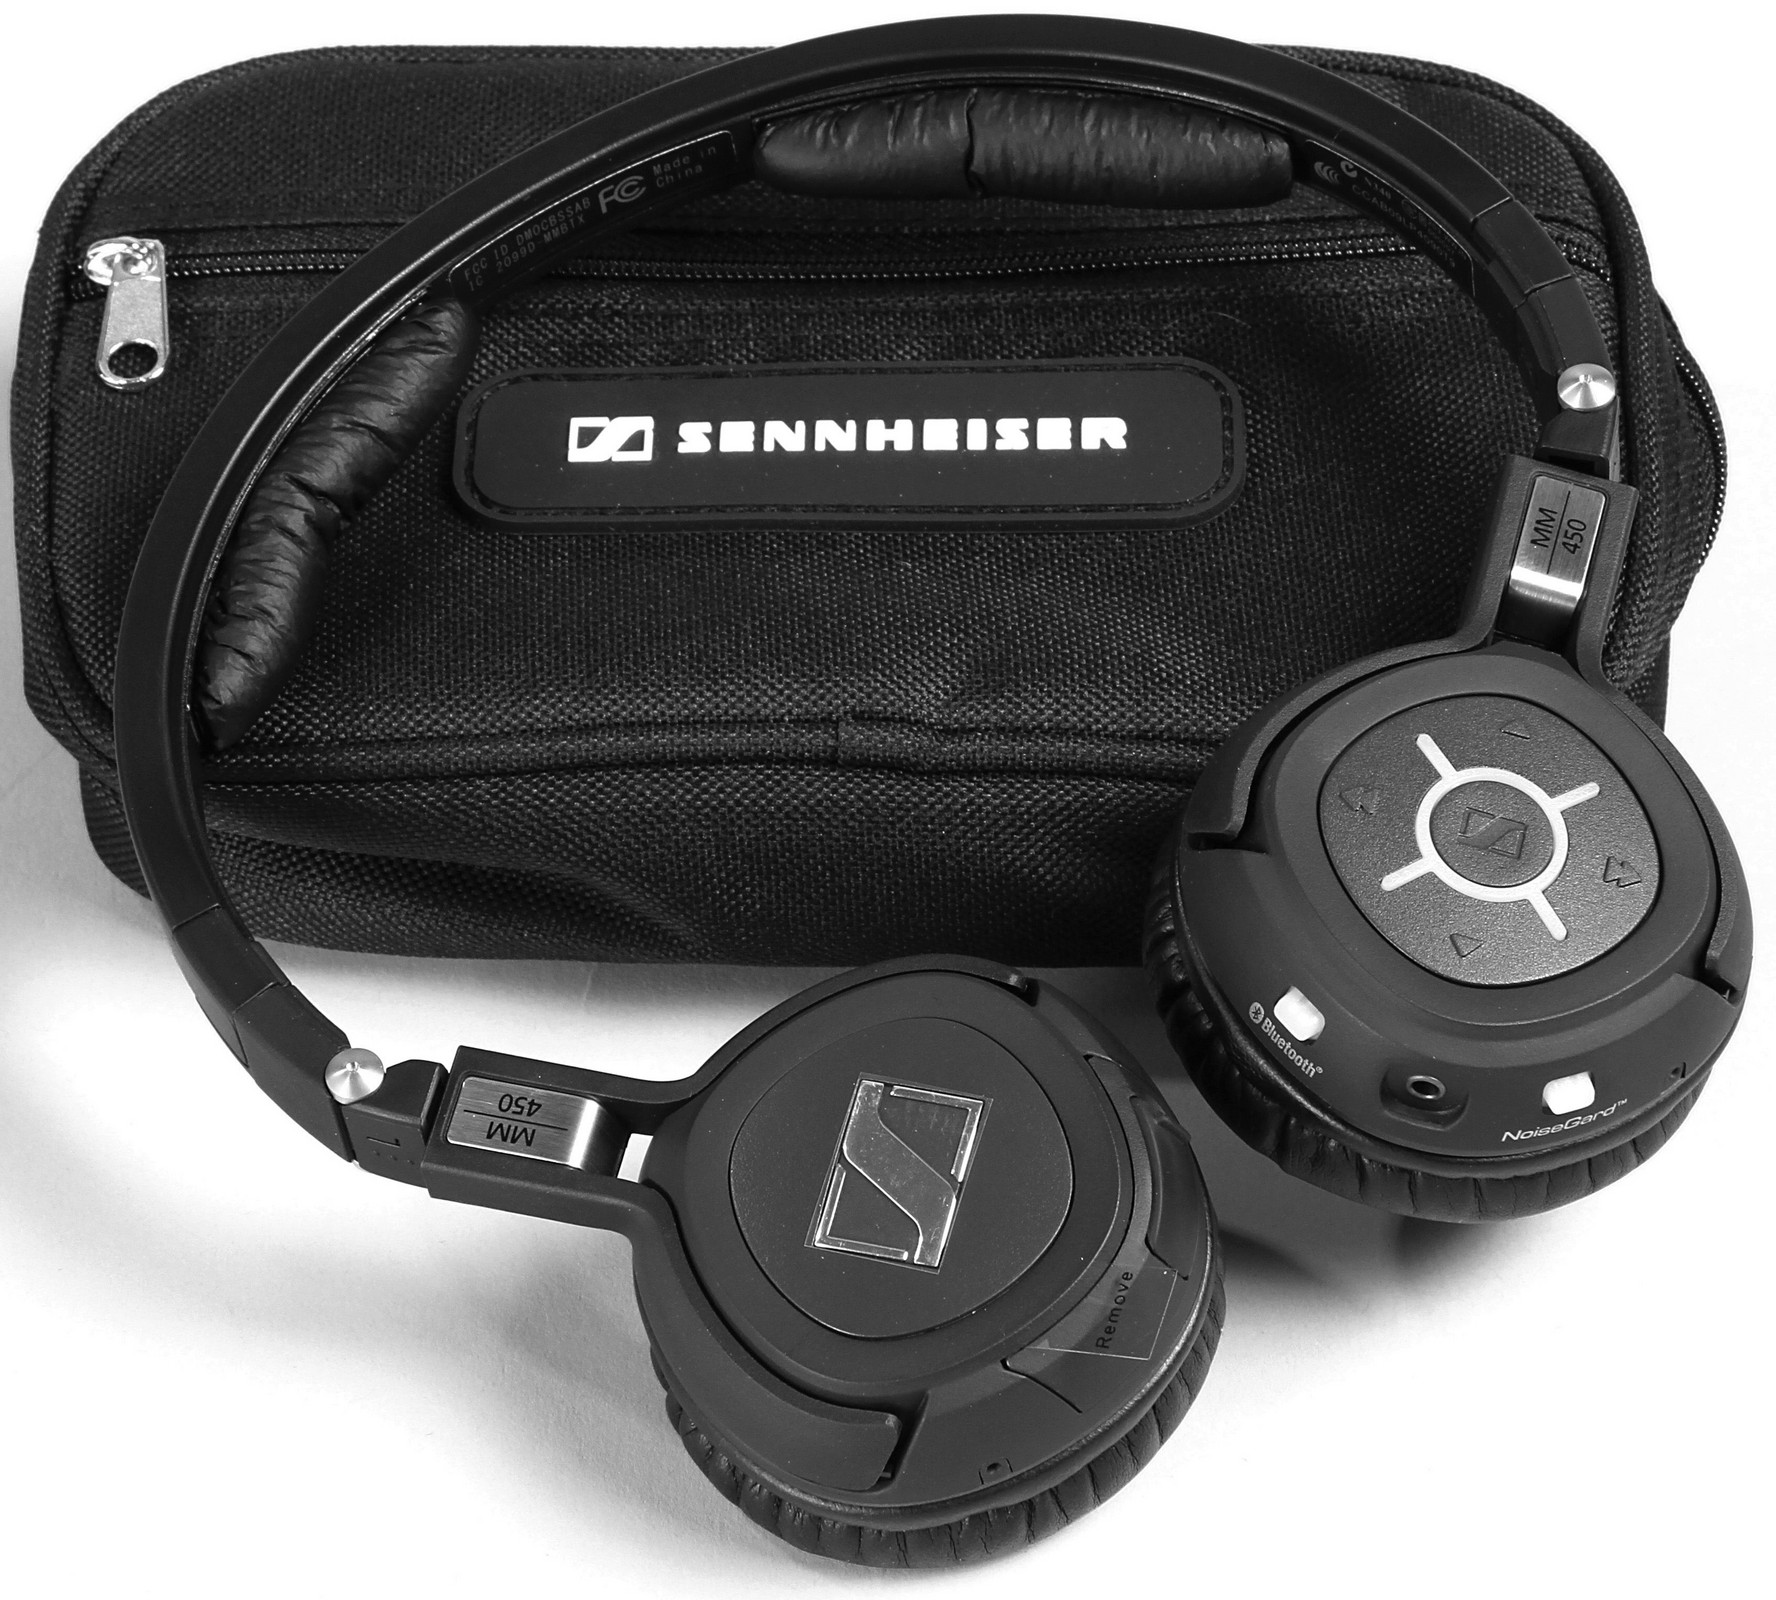 Sennheiser MM 450-X Travel